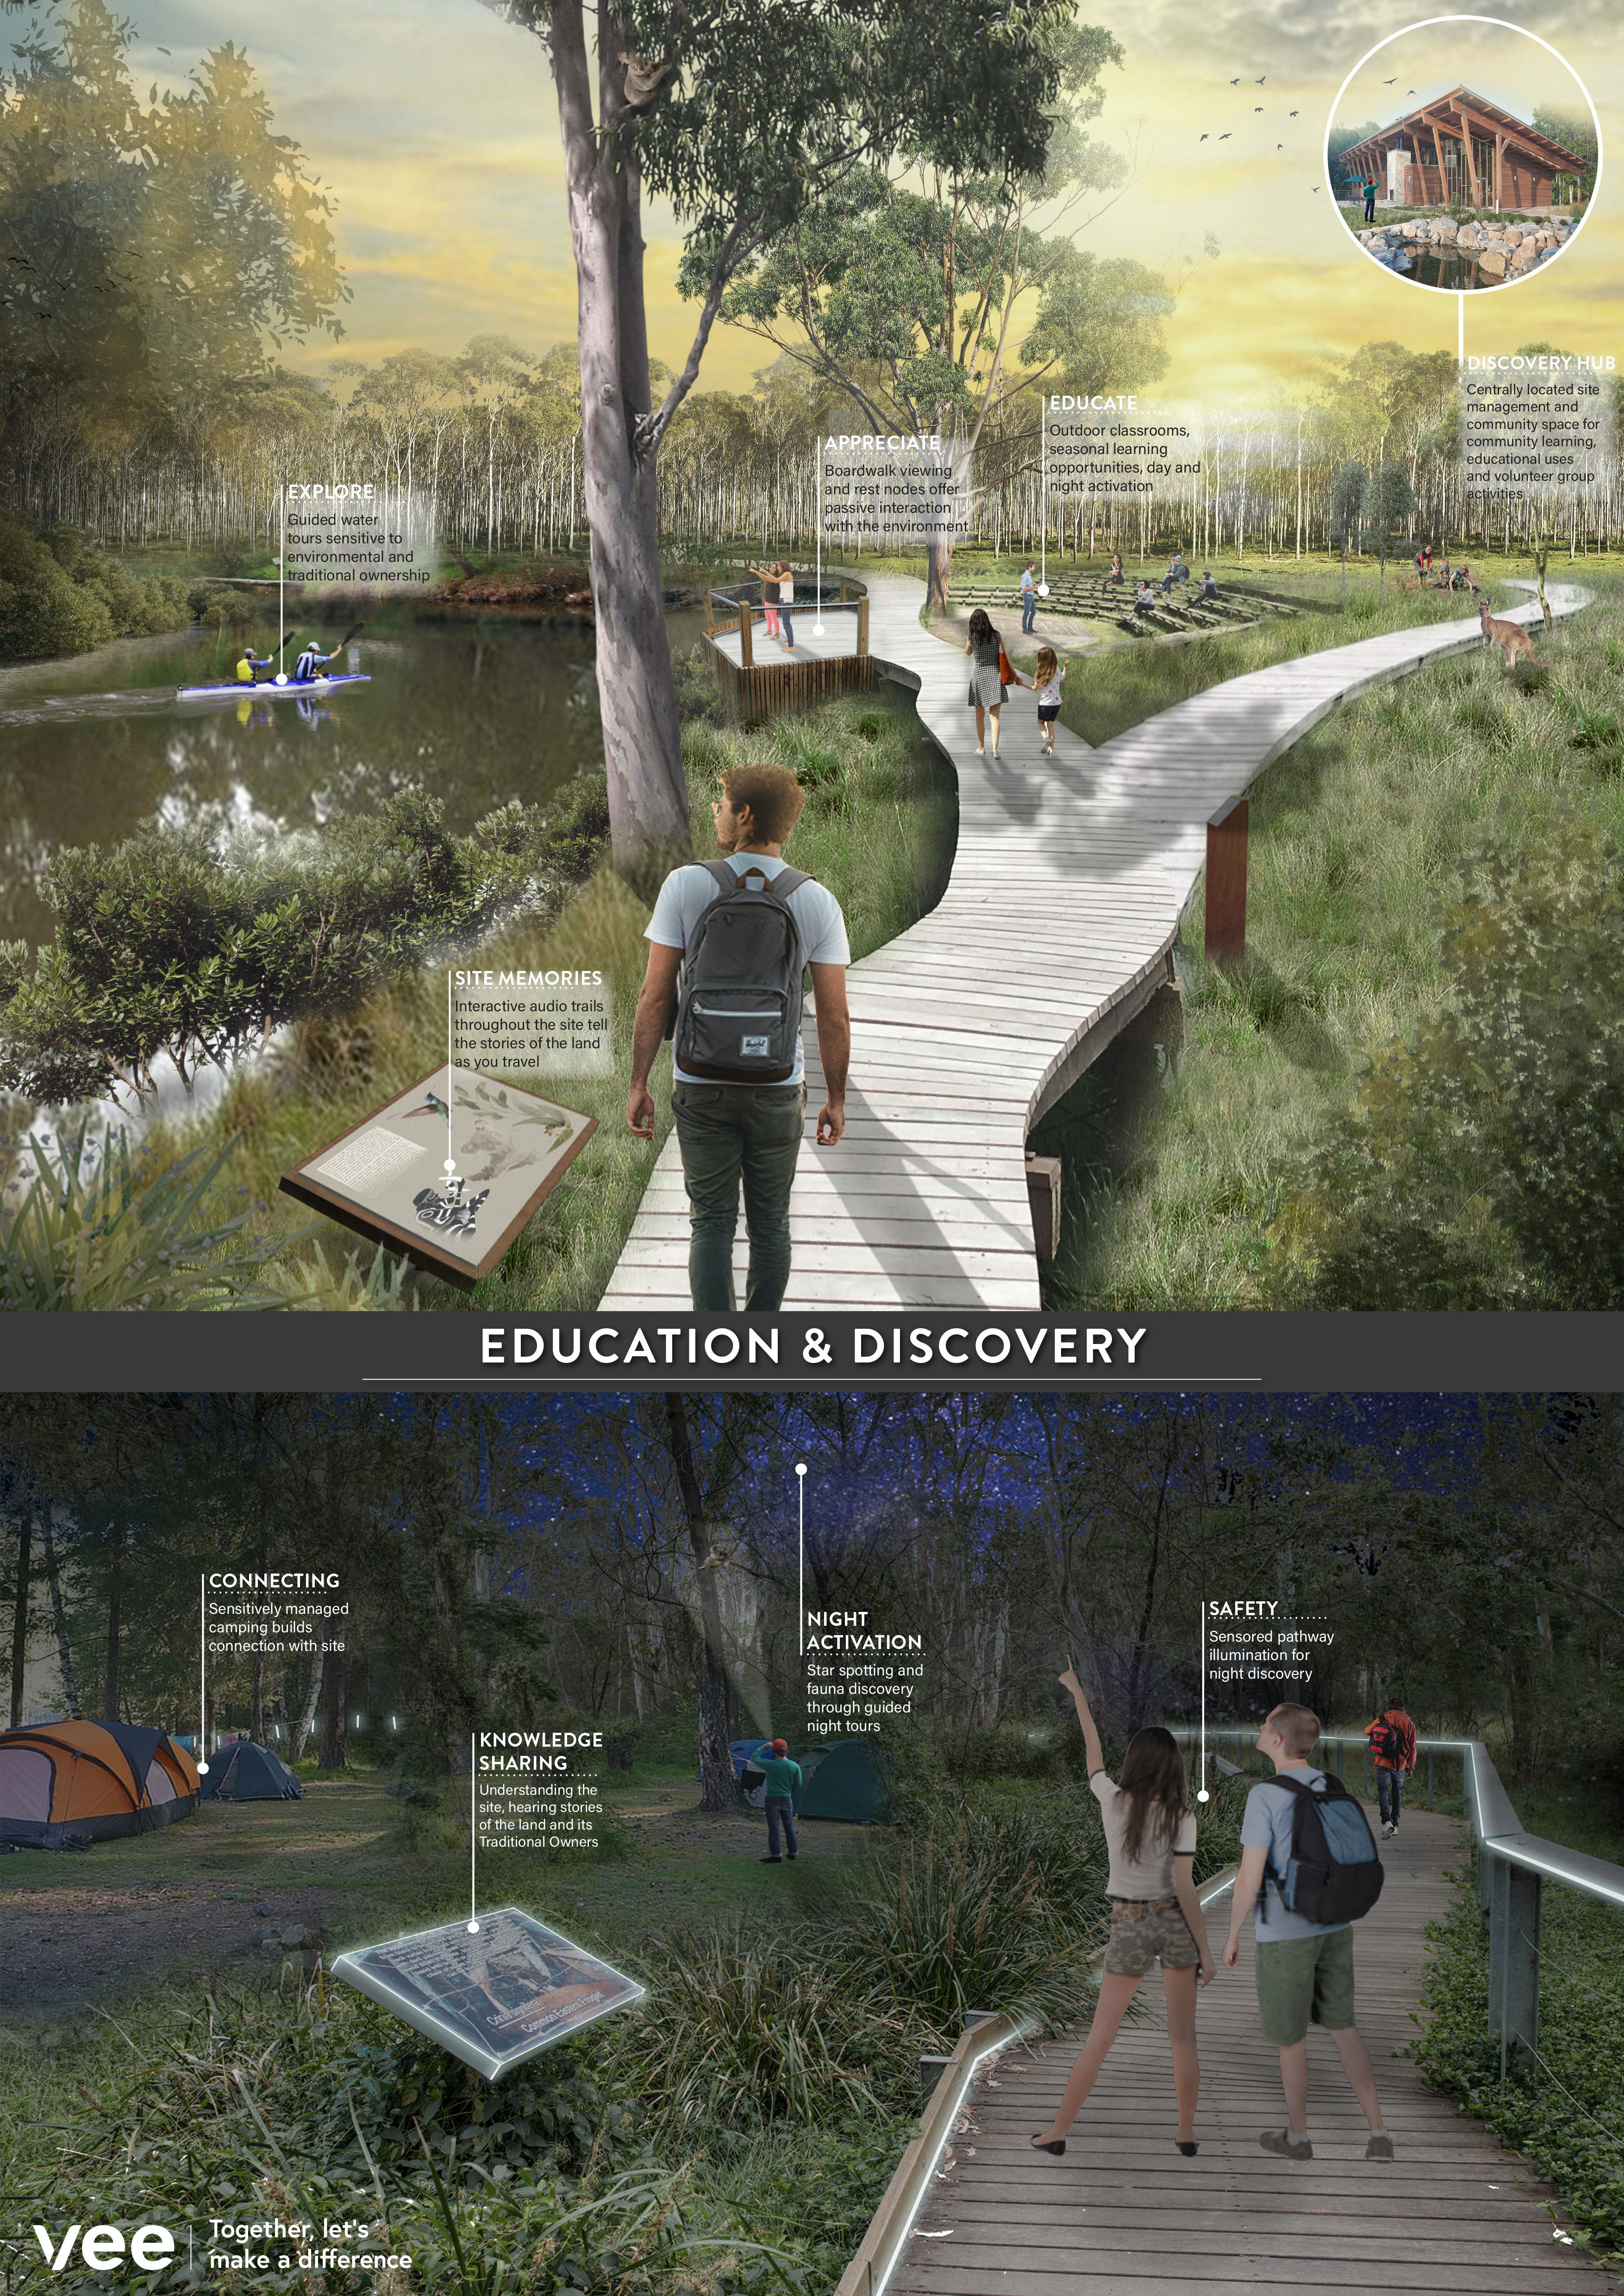 Education and Discovery Vision Board - by Vee Design